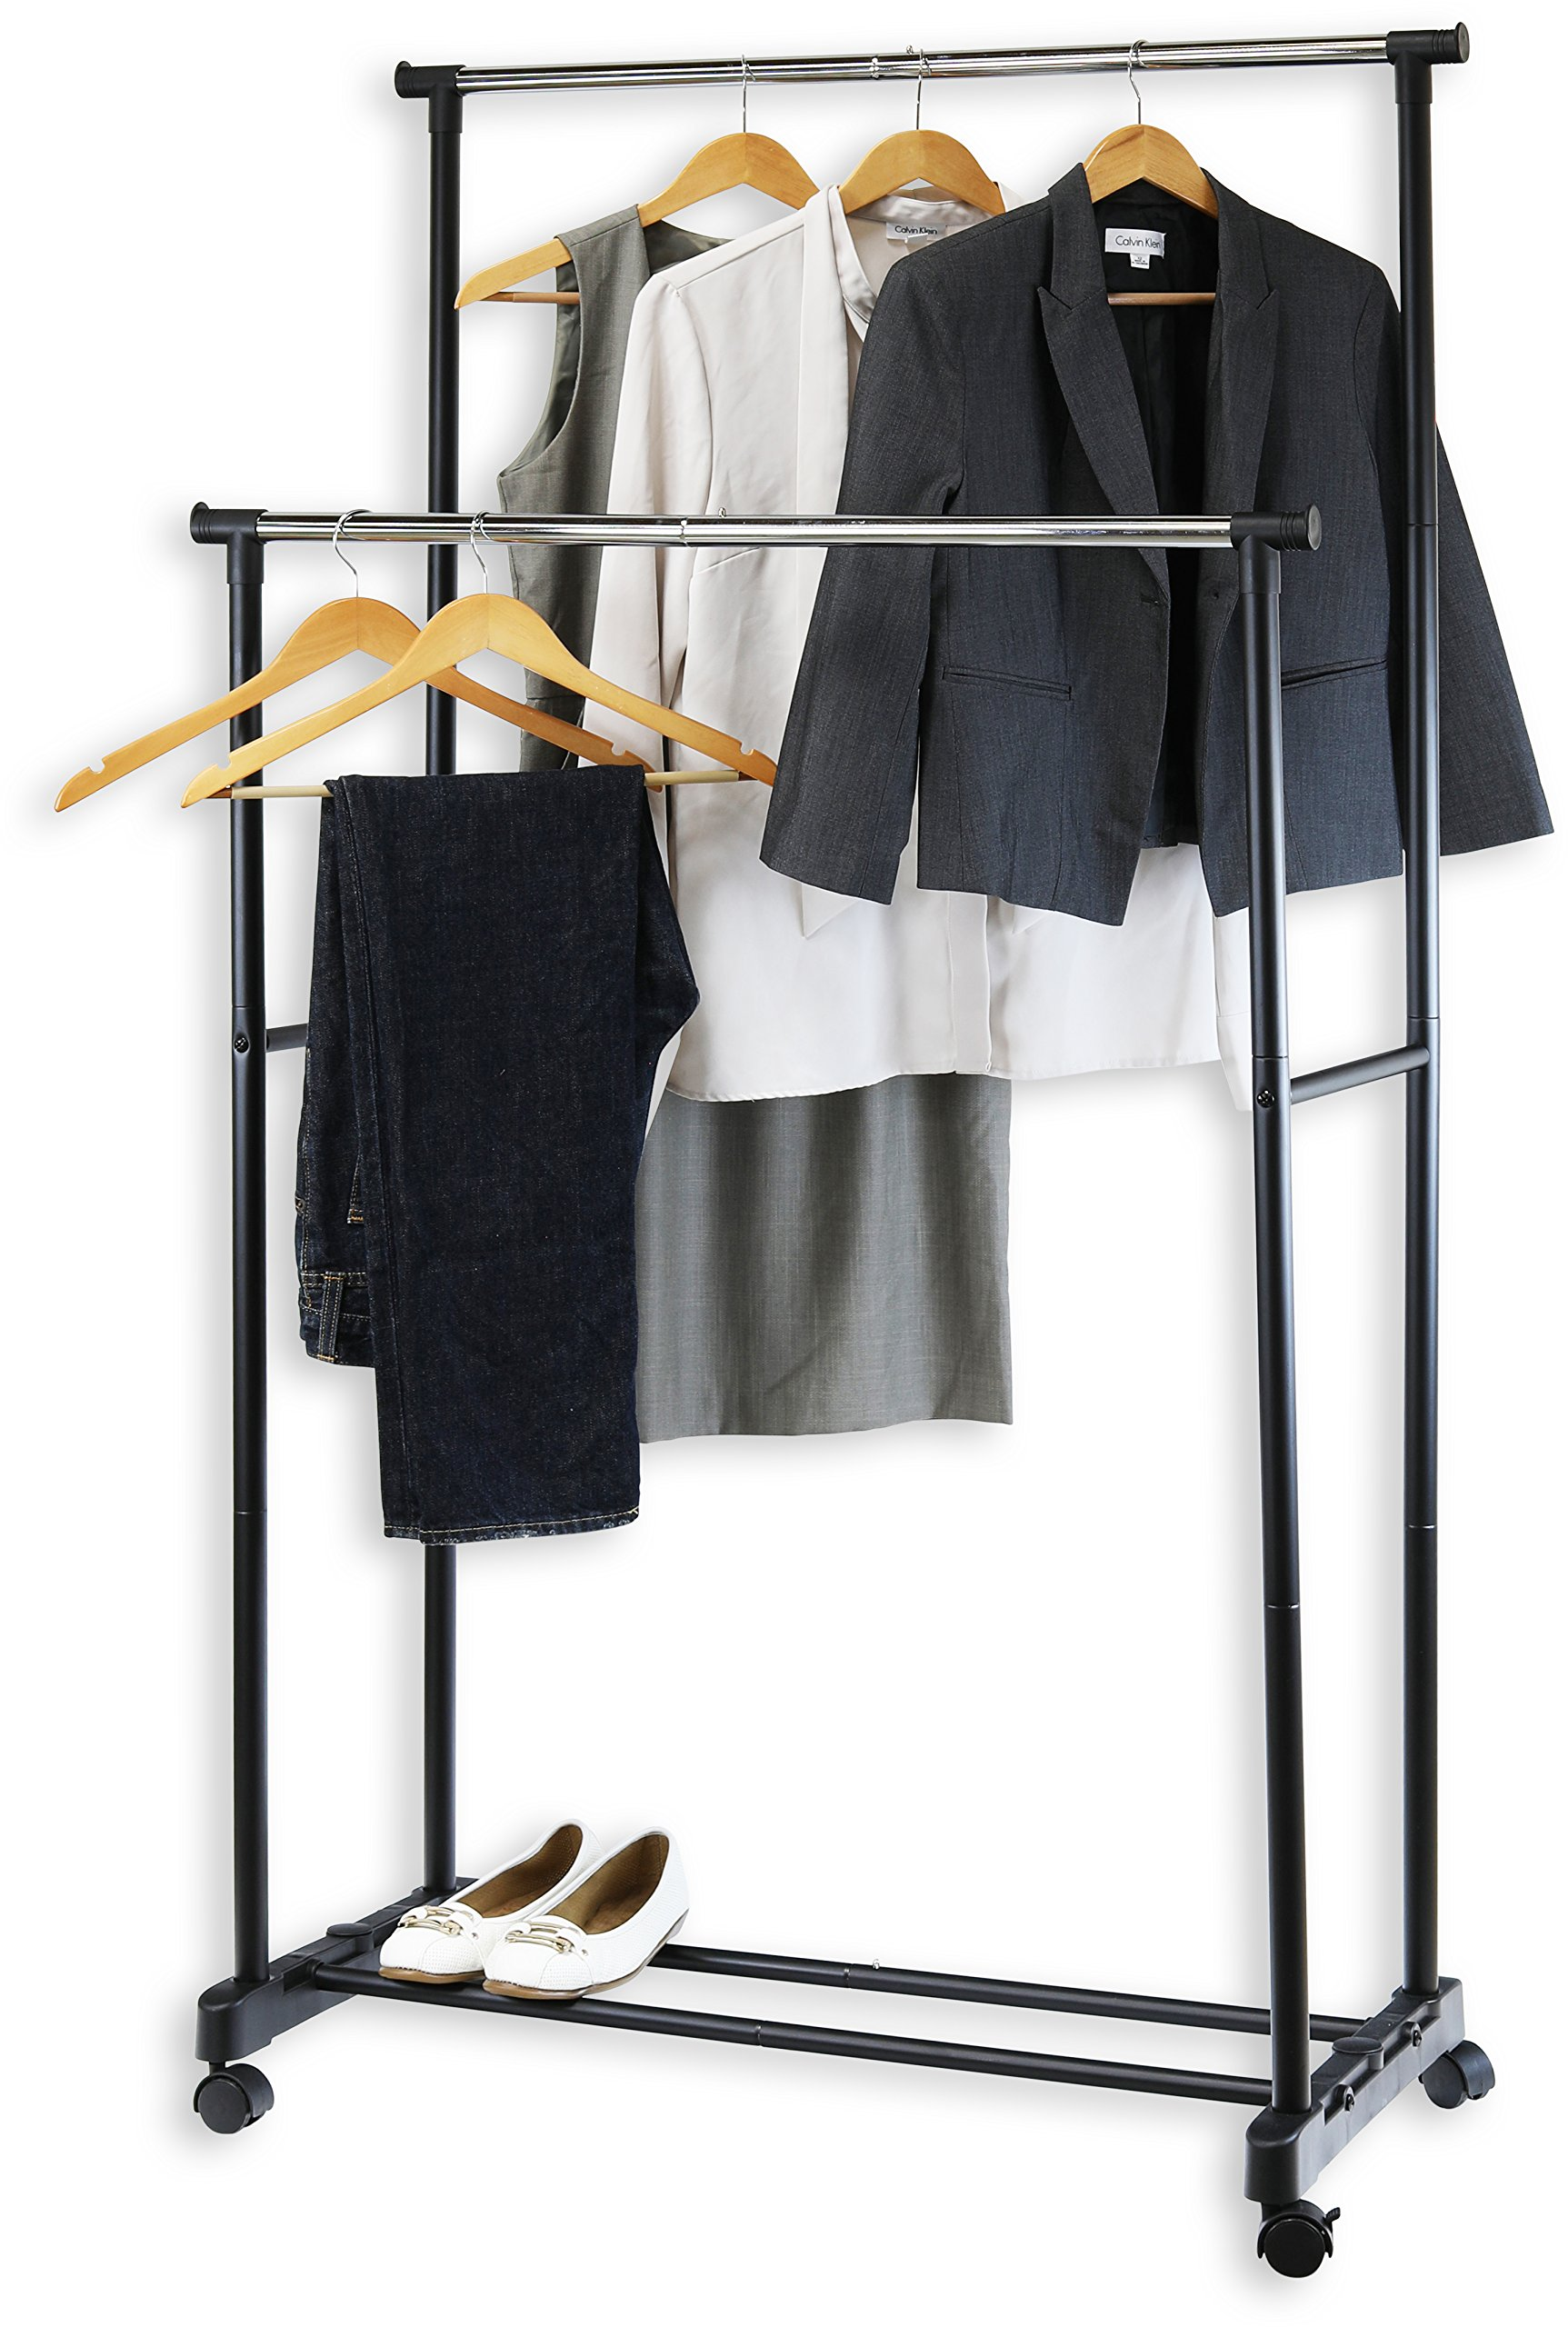 Simple Houseware Double Rod Portable Clothing Hanging Garment Rack by Simple Houseware